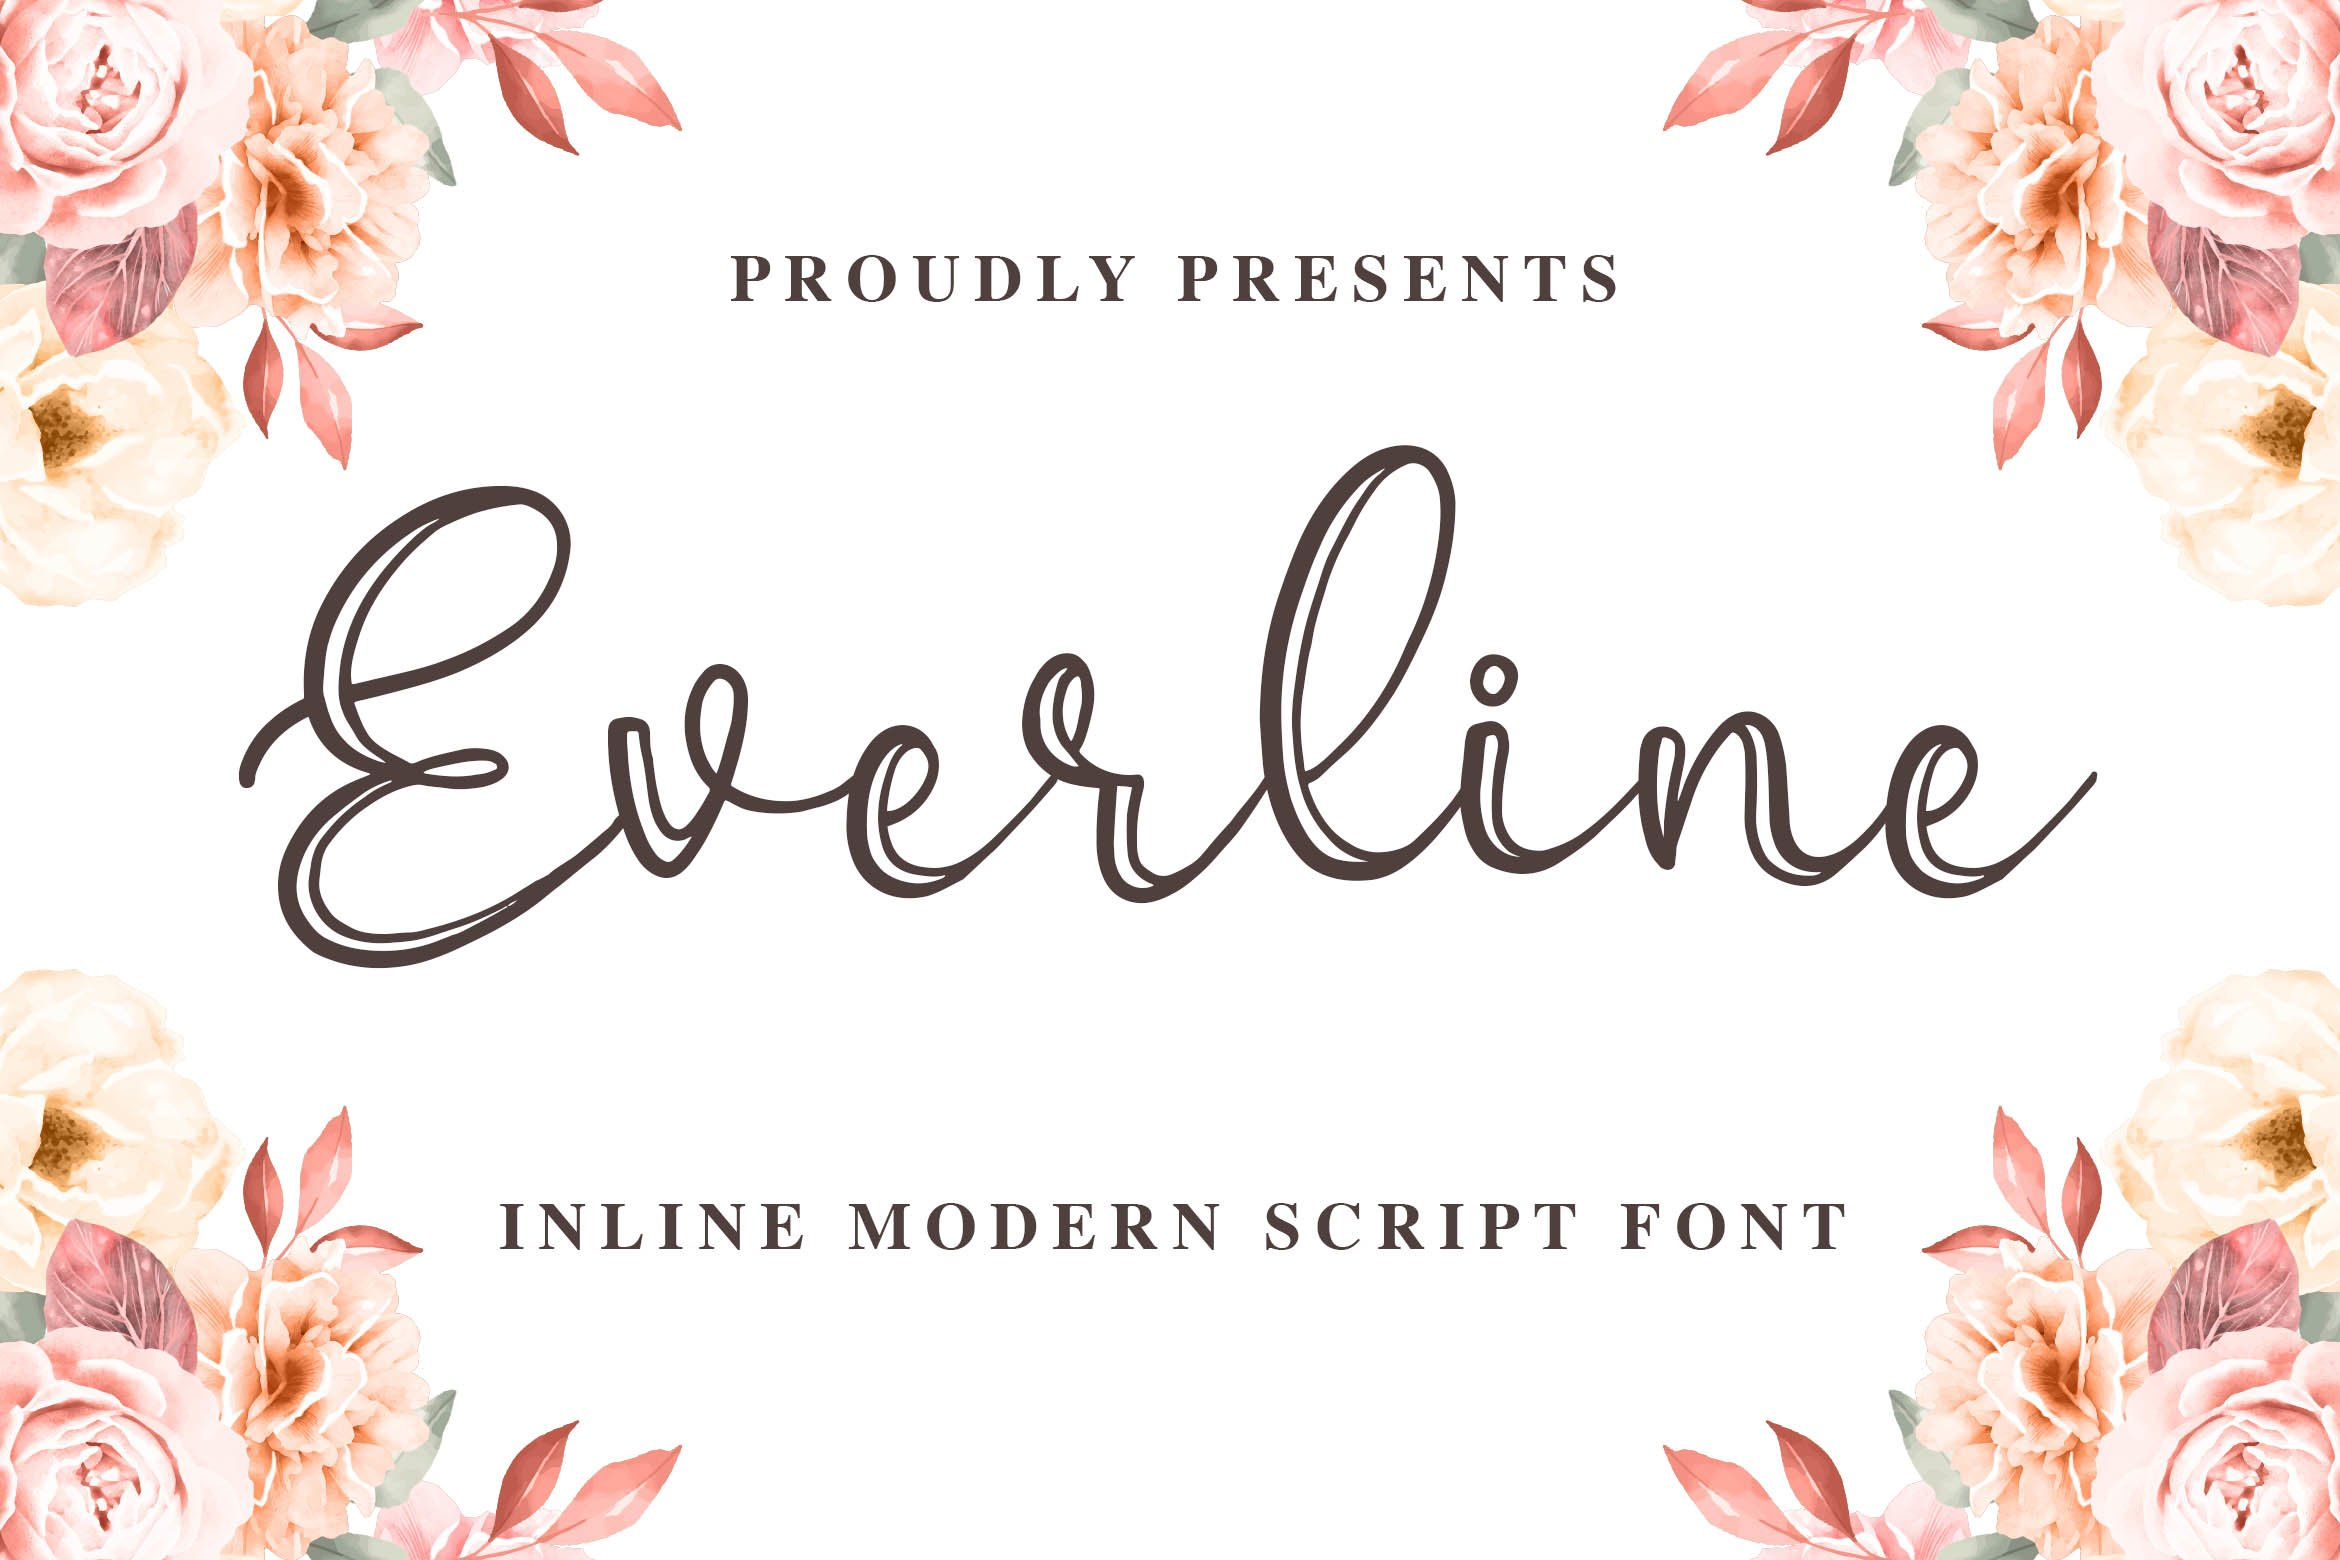 Everline - a Modern Calligraphy example image 1